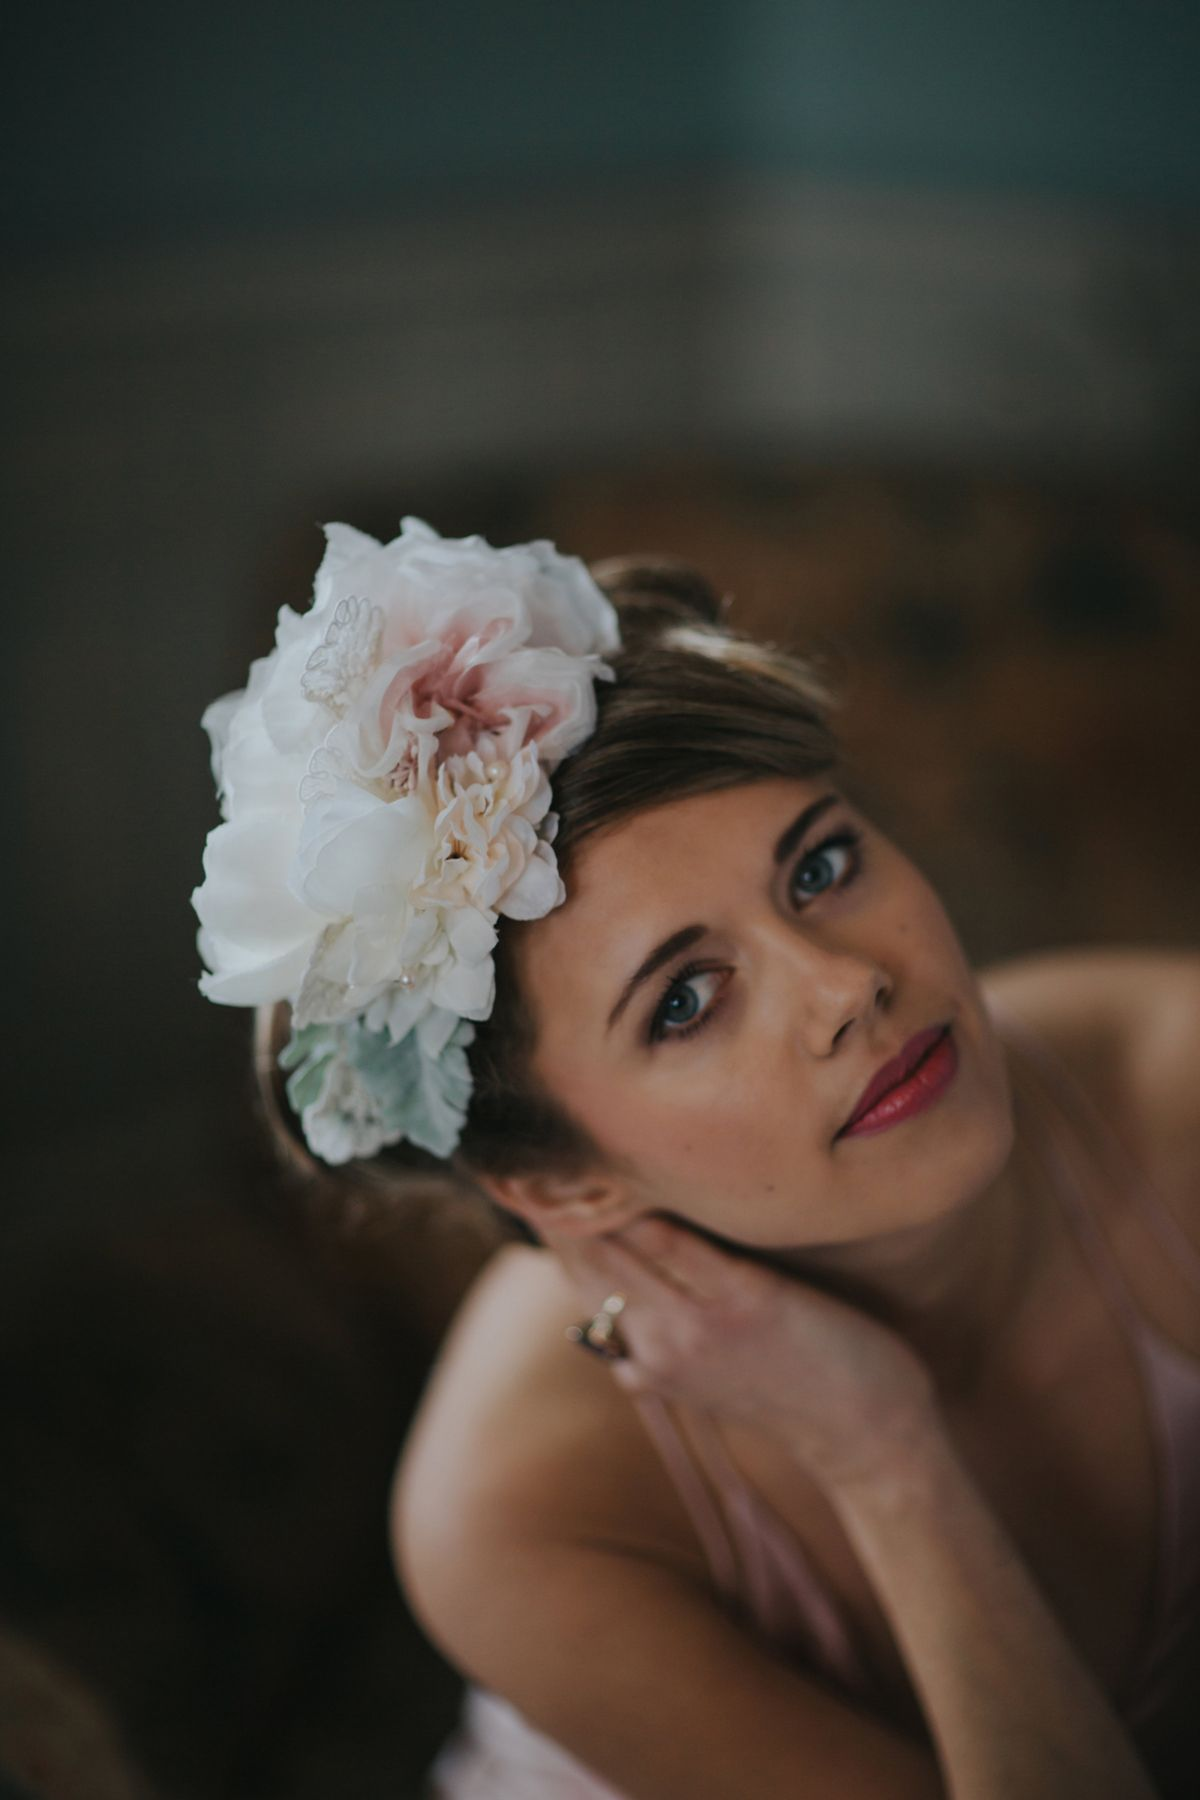 Stunning Statement Hats From Holly Young Millinery (Supplier Spotlight ) ab697888e60